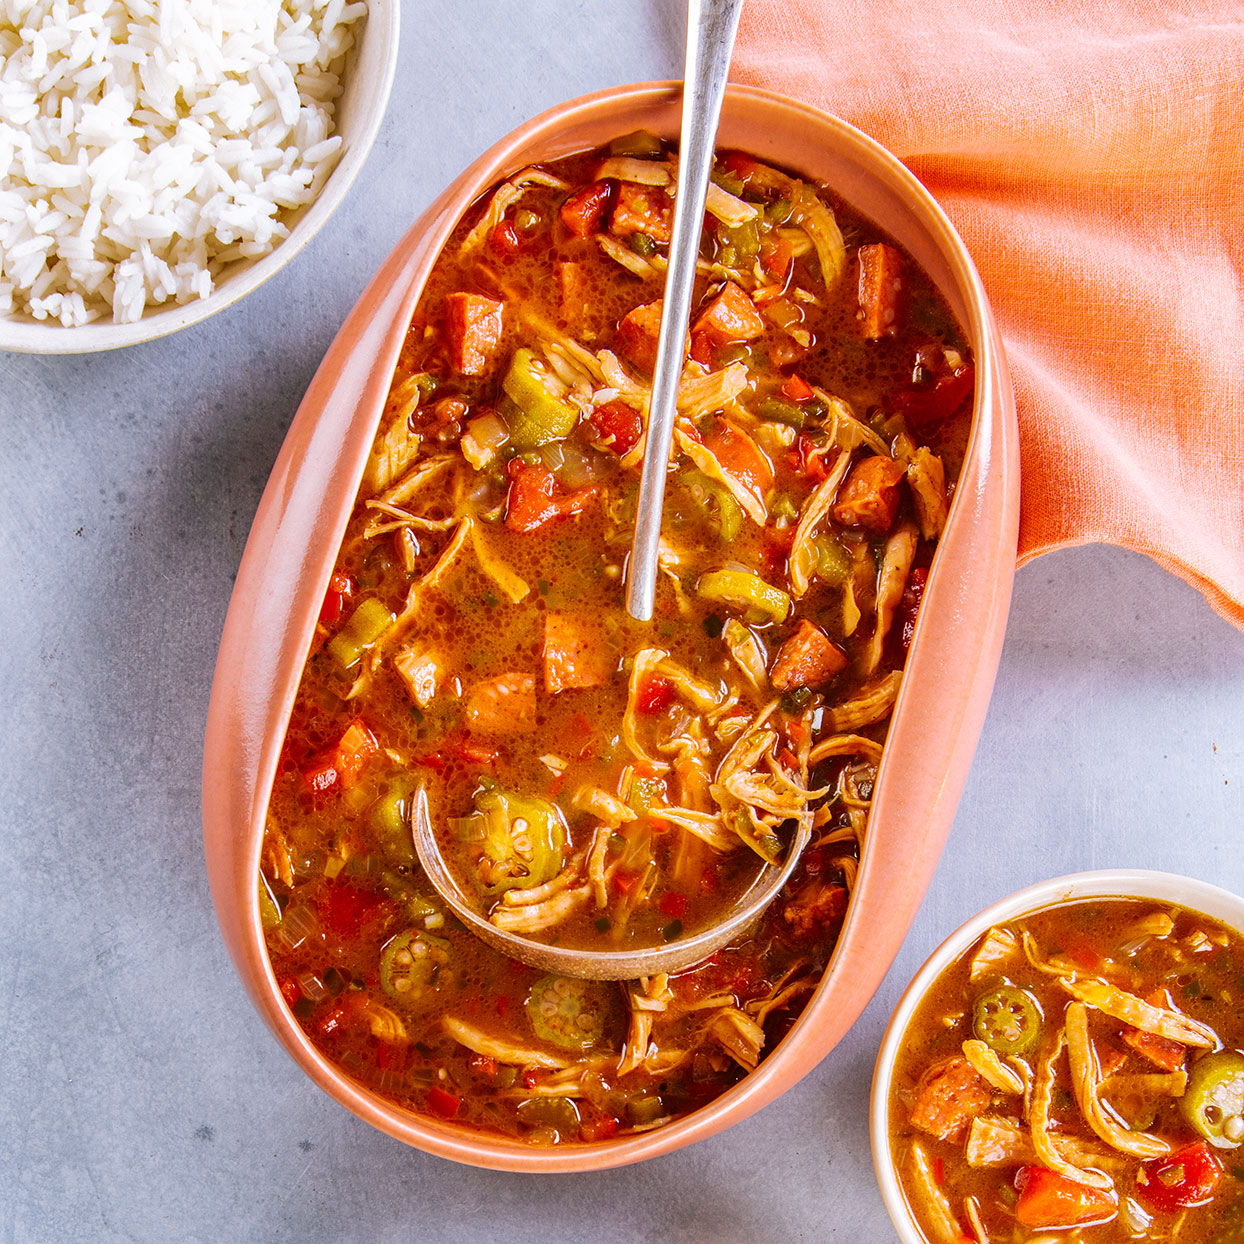 This dish puts other healthy leftover turkey recipes to shame. Chef Hugh Acheson puts his unique spin on gumbo by mixing untraditional spices like allspice and coriander with must-have thyme and filé powder. Also called gumbo filé, filé powder is the finely ground leaves of the sassafras tree; look for it in well-stocked supermarkets or online. Serve the gumbo over rice and don't forget to pass the hot sauce.